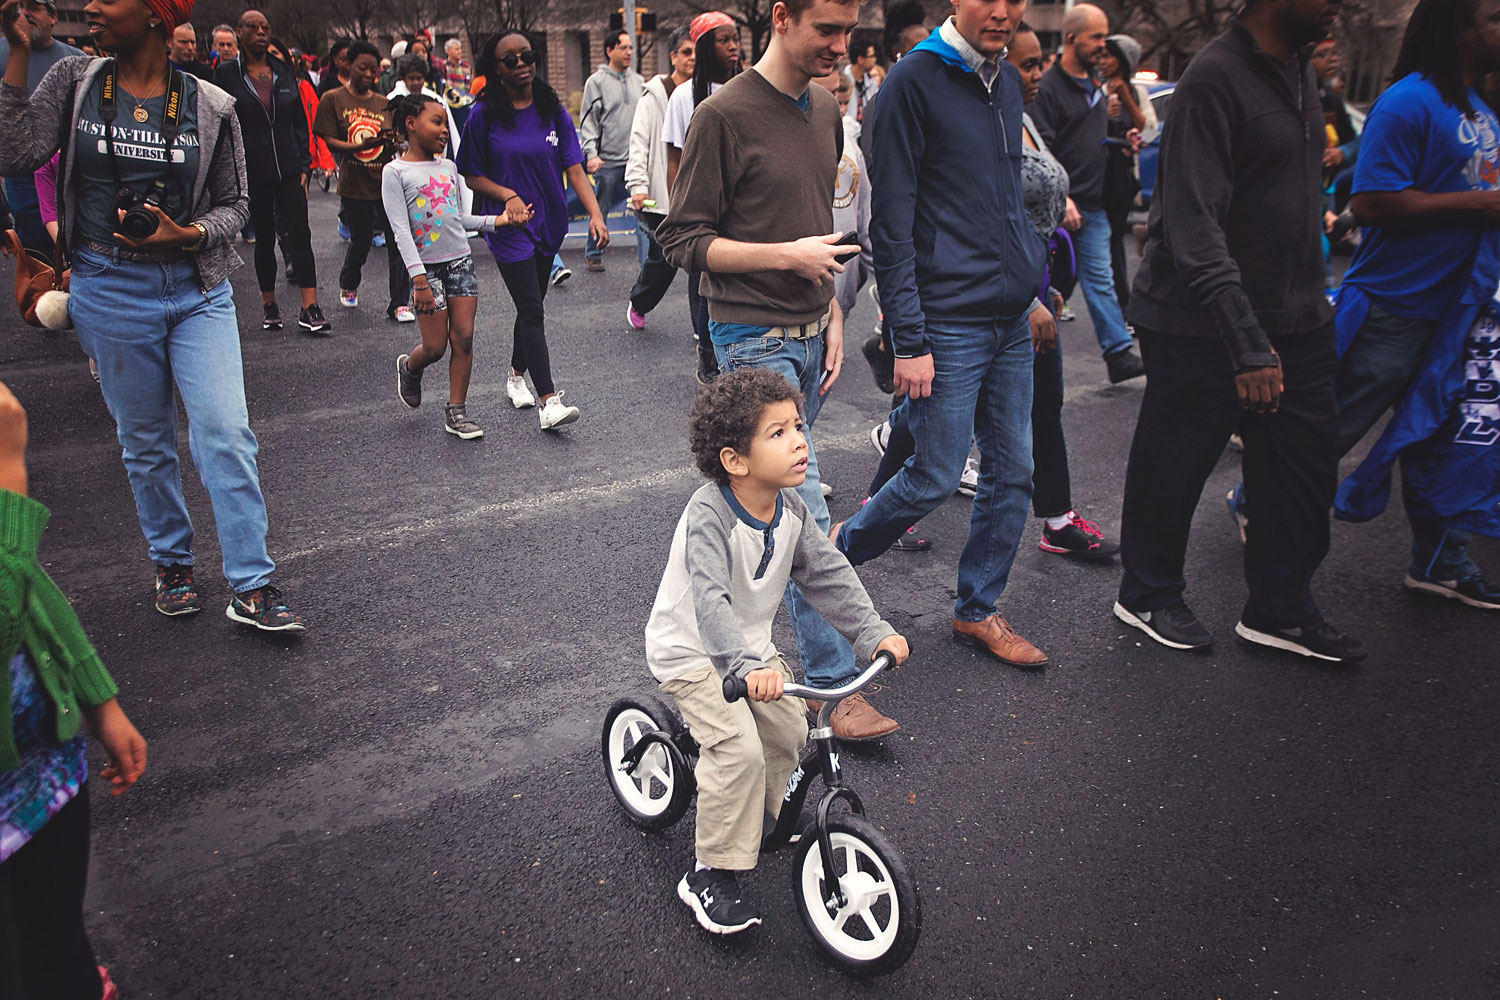 Celebrate Martin Luther King Jr. Day with kids. MLK March with kids.